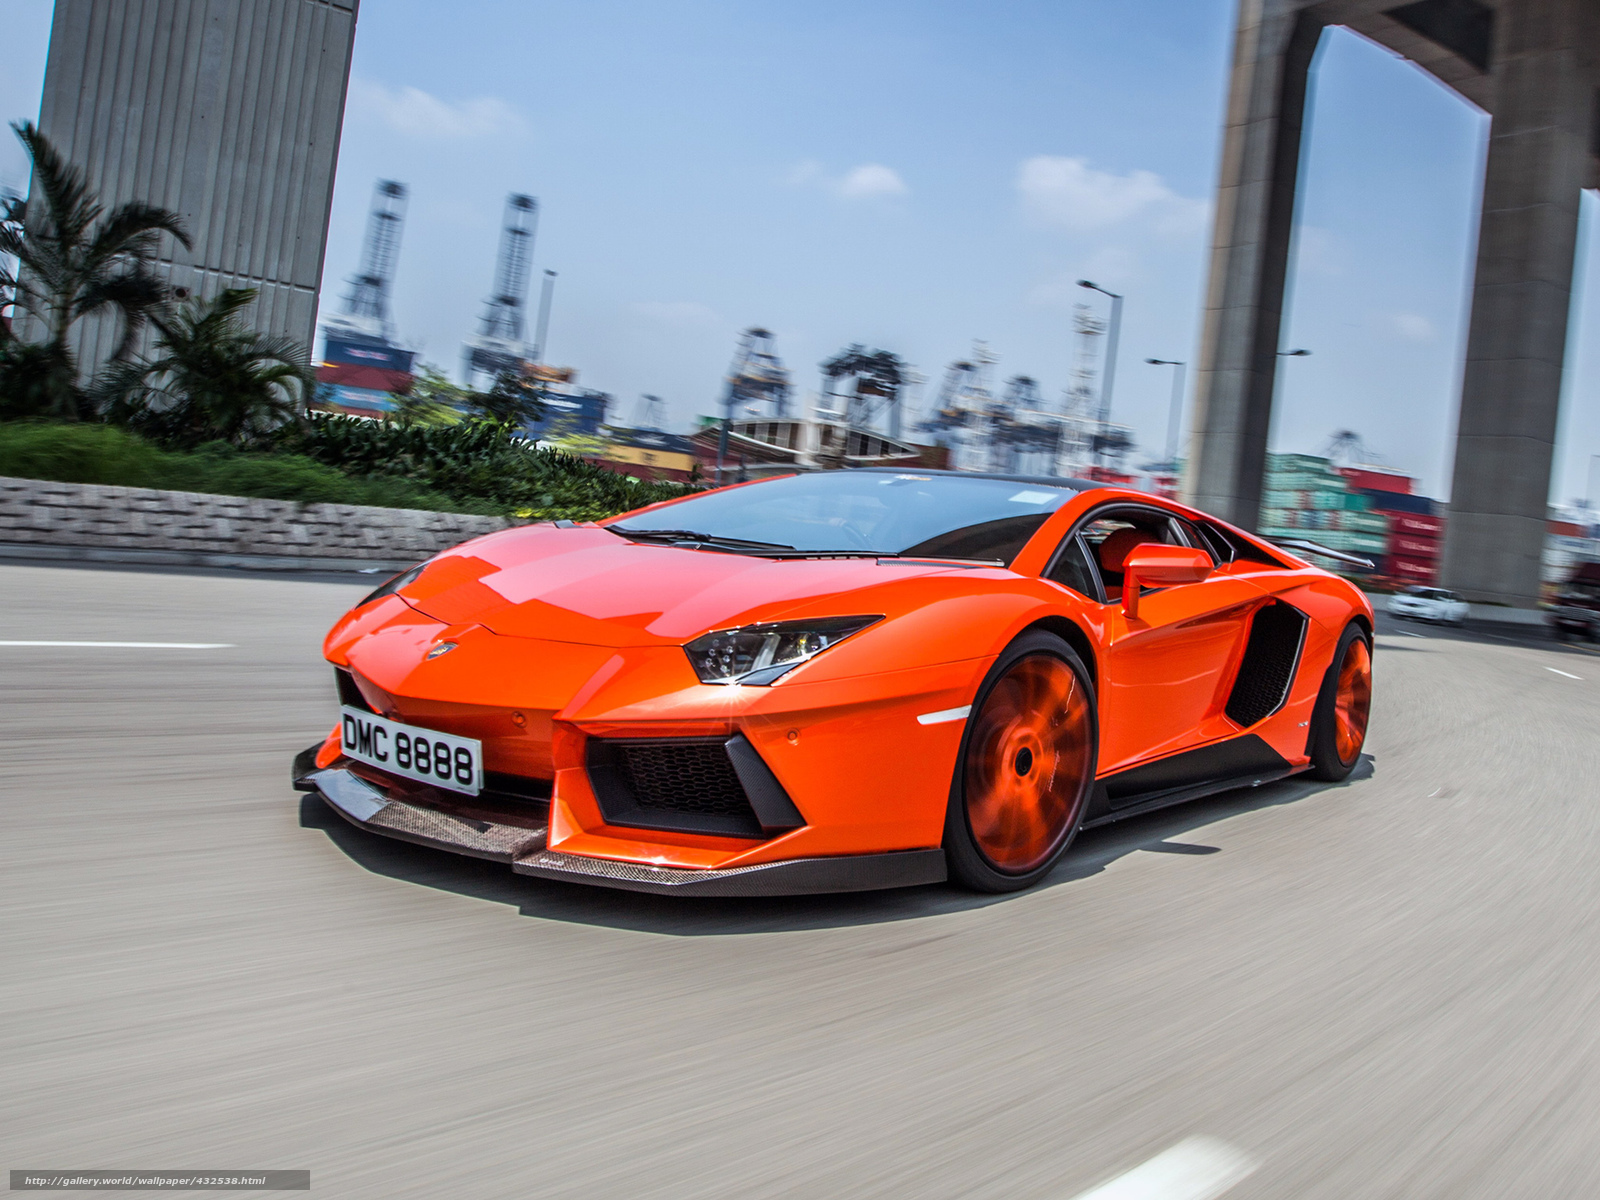 Download wallpaper Lamborghini aventador Tuning motion desktop 1600x1200